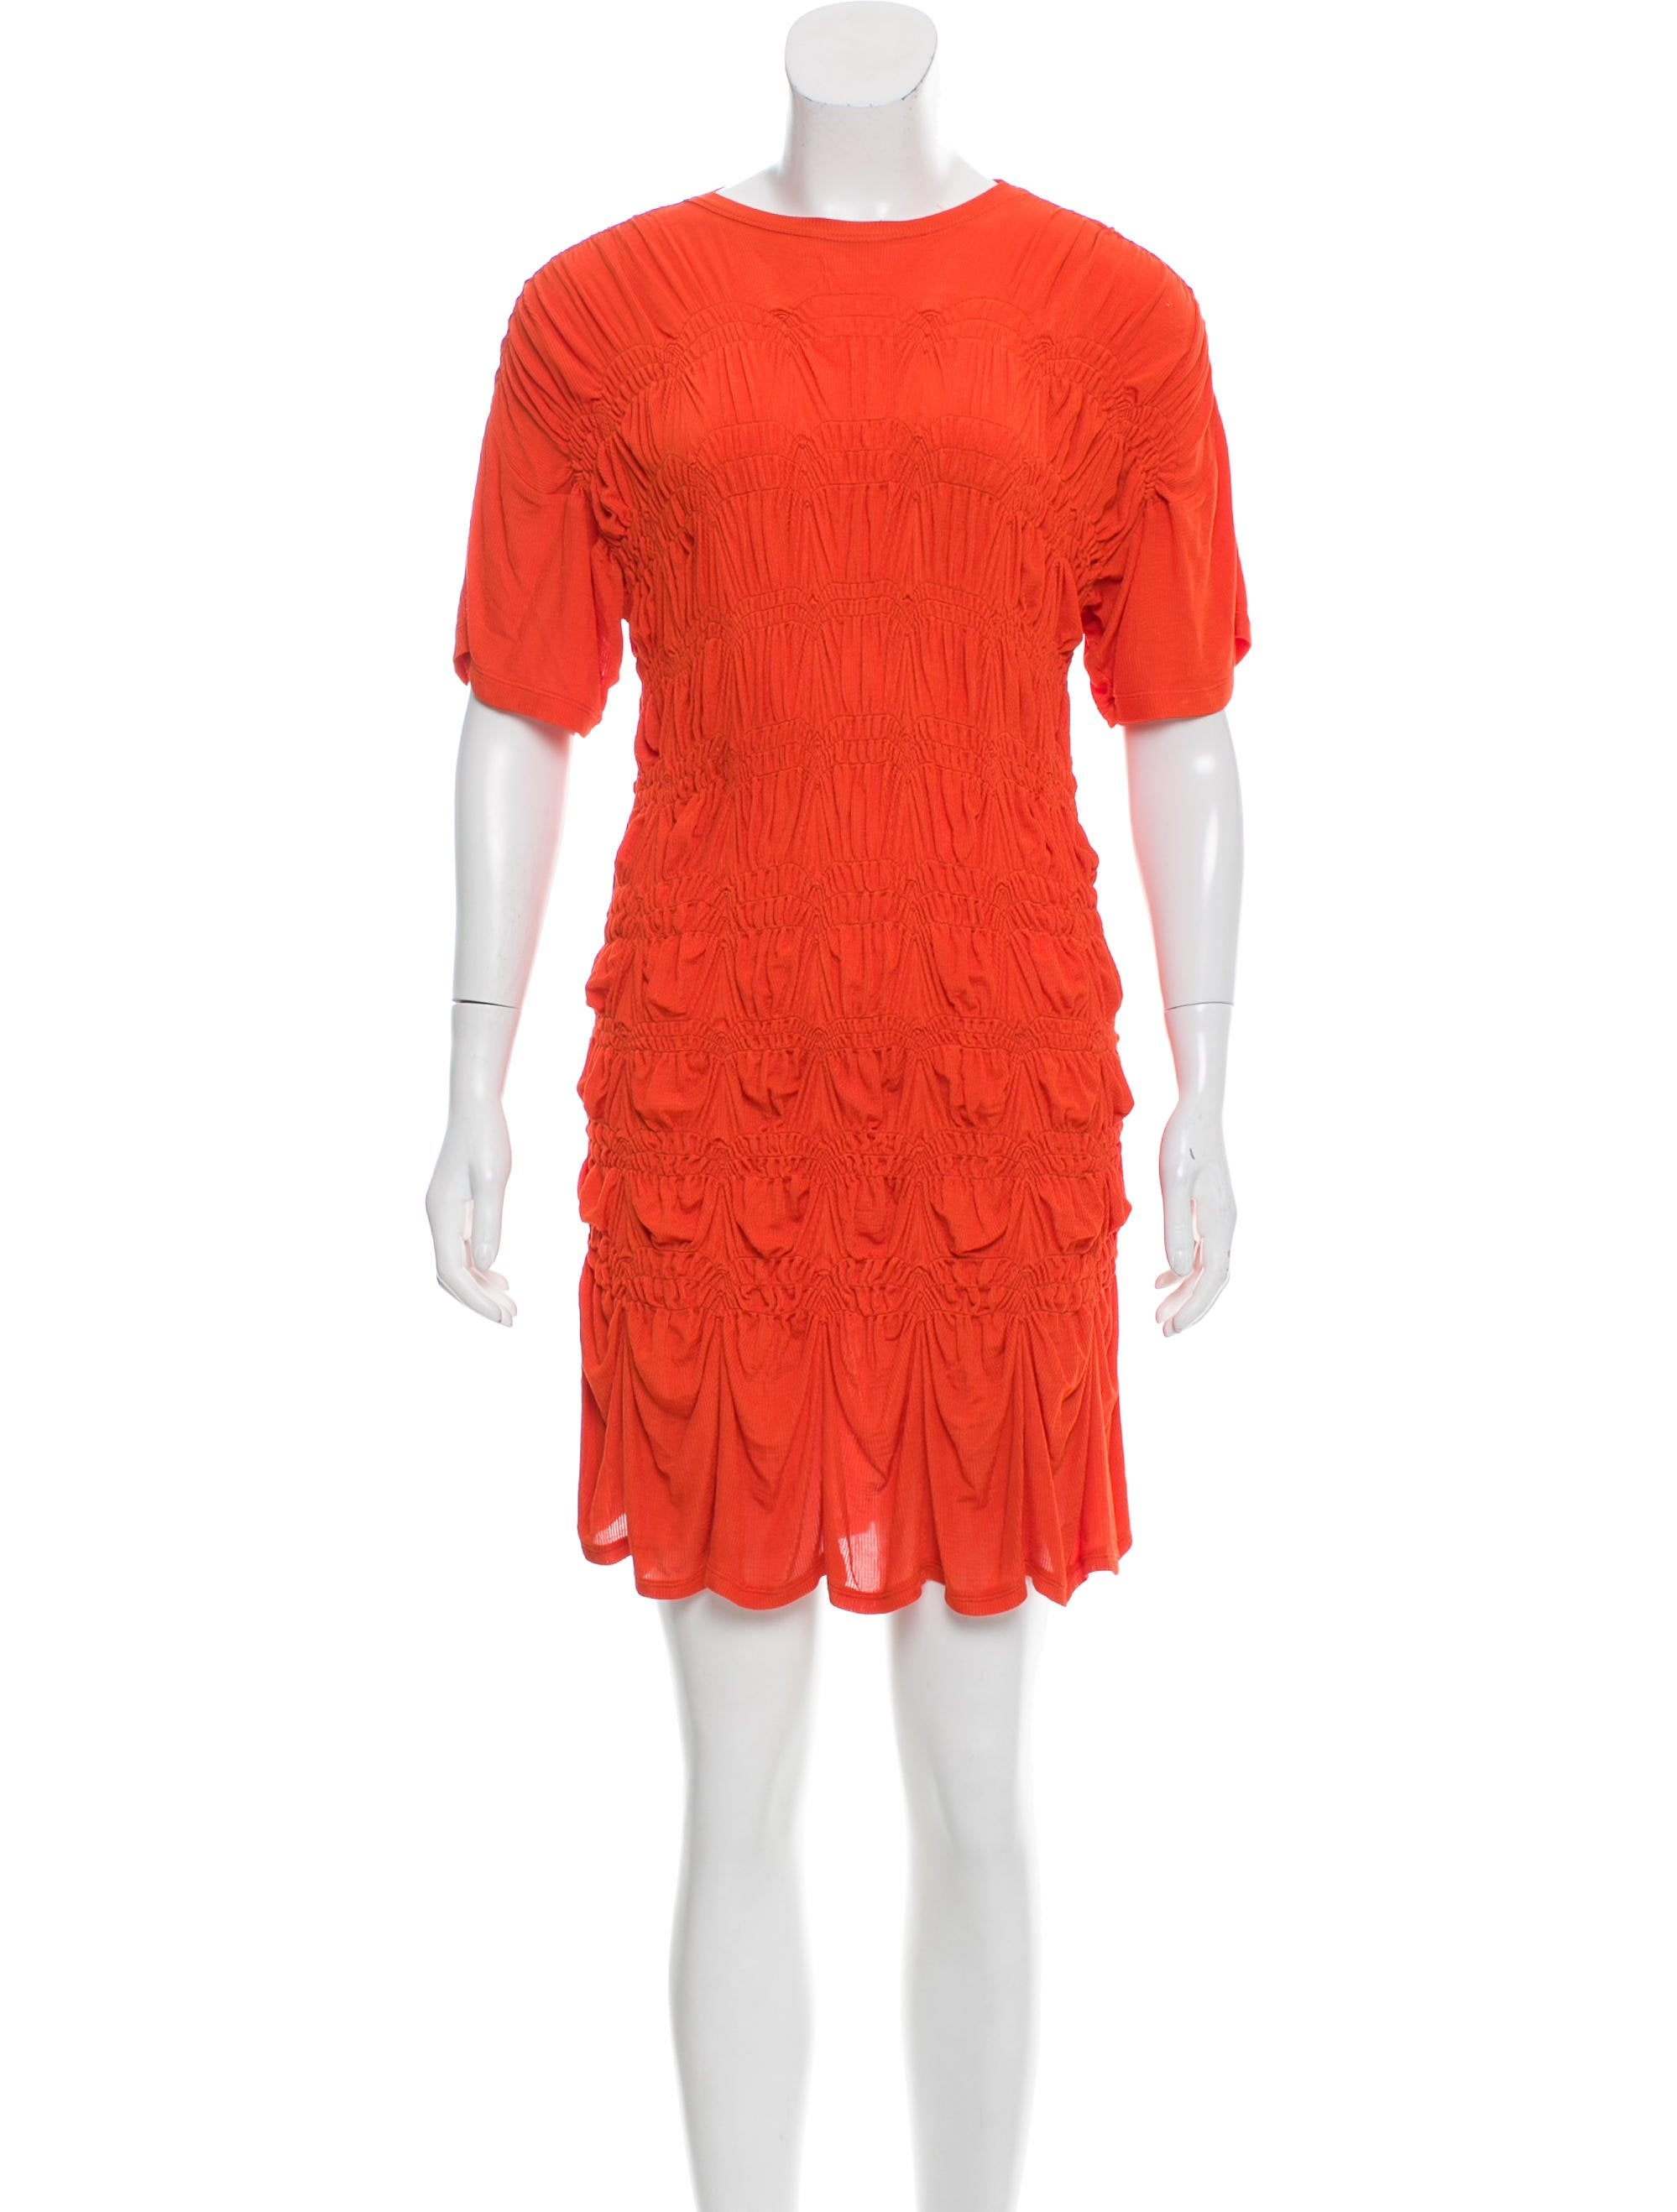 Jean paul gaultier ruched mini dress clothing jea27350 for Jean paul gaultier clothing